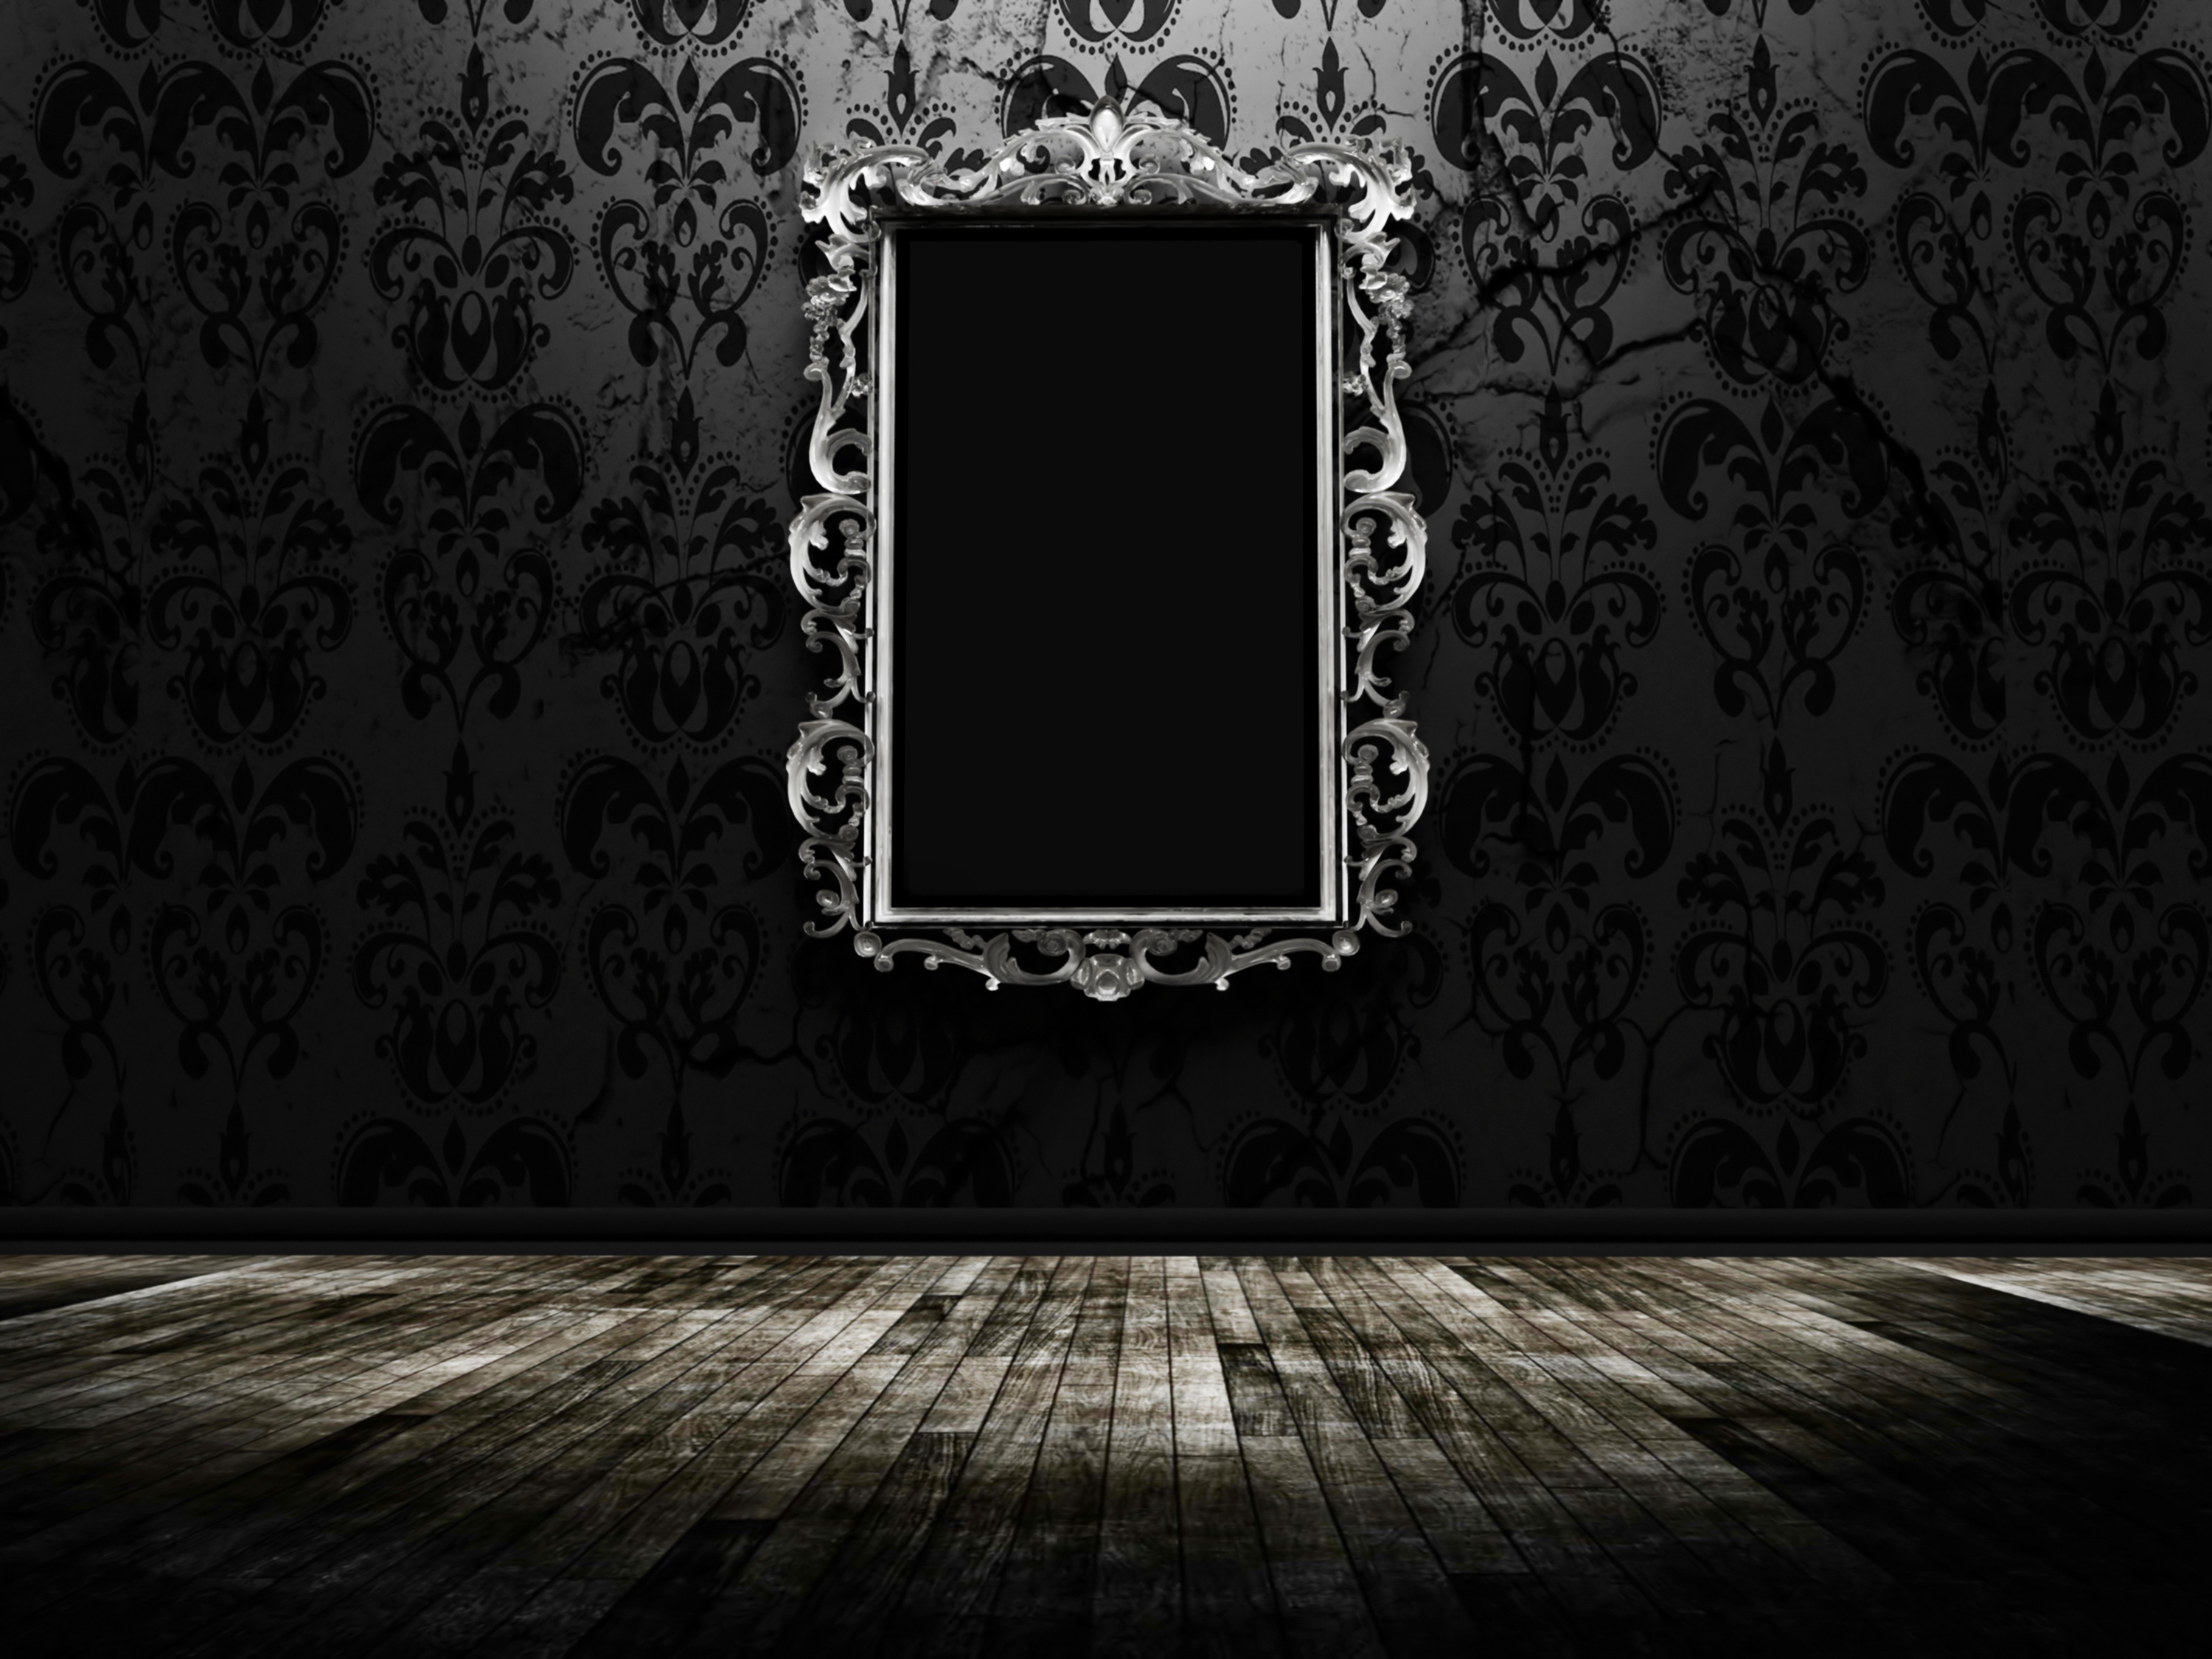 Mirror Mirror On The Wall mirror, mirror on the wall… - the compliance and ethics blog